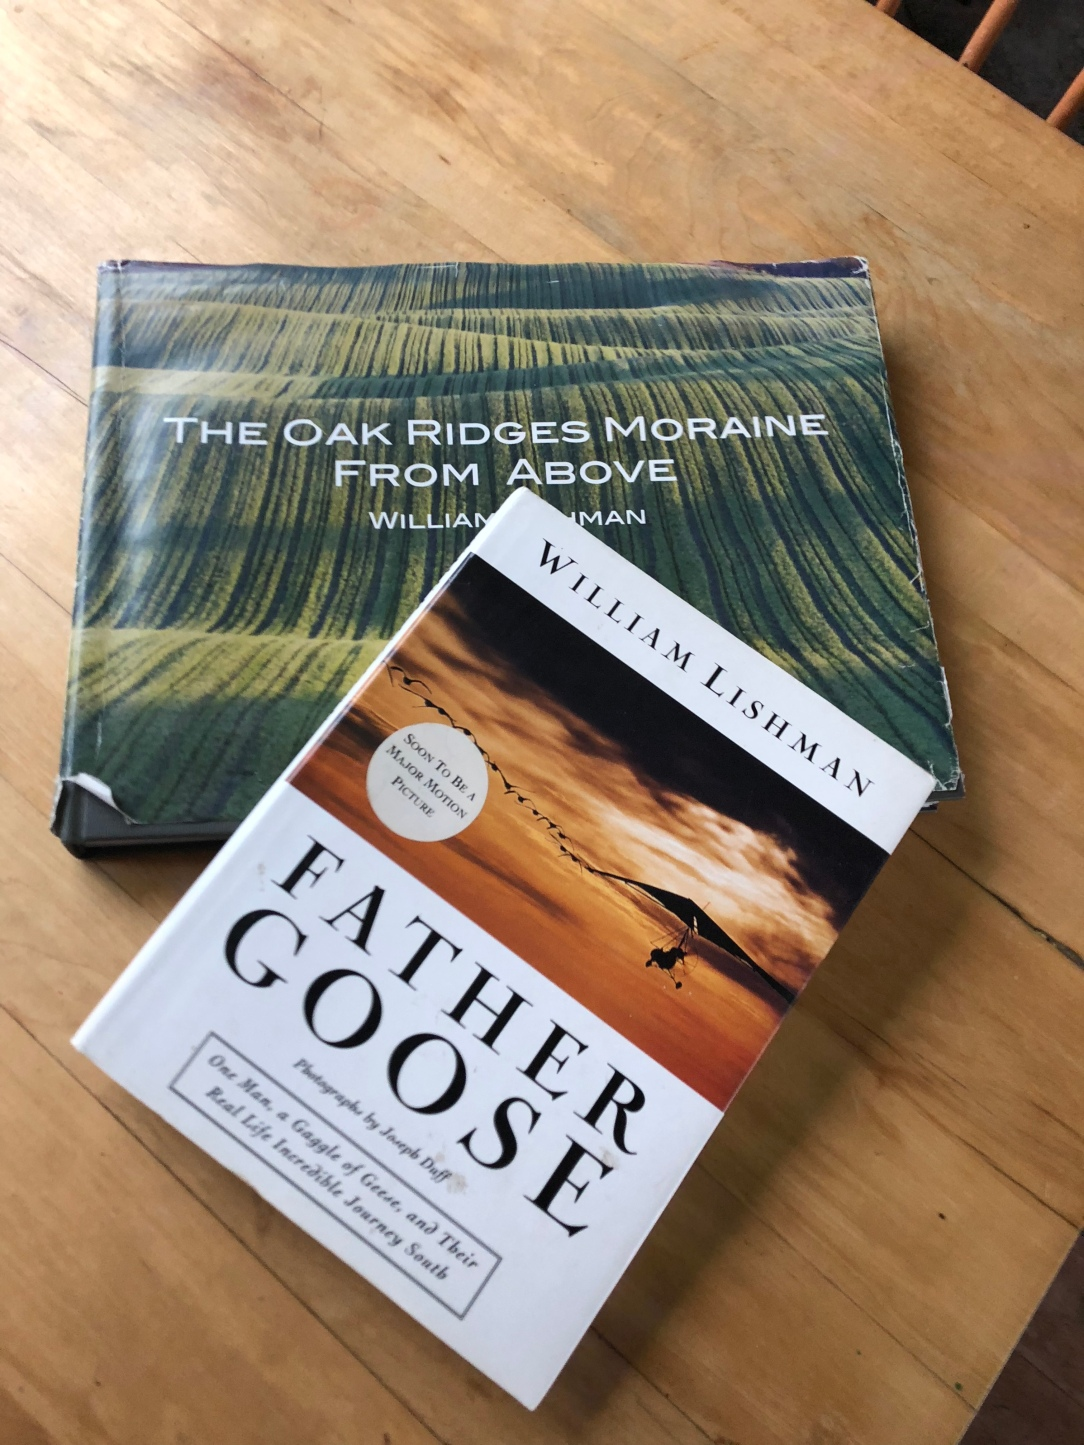 Coffee table books about Bill Lishman, aviation and the Oak Ridges Moraine